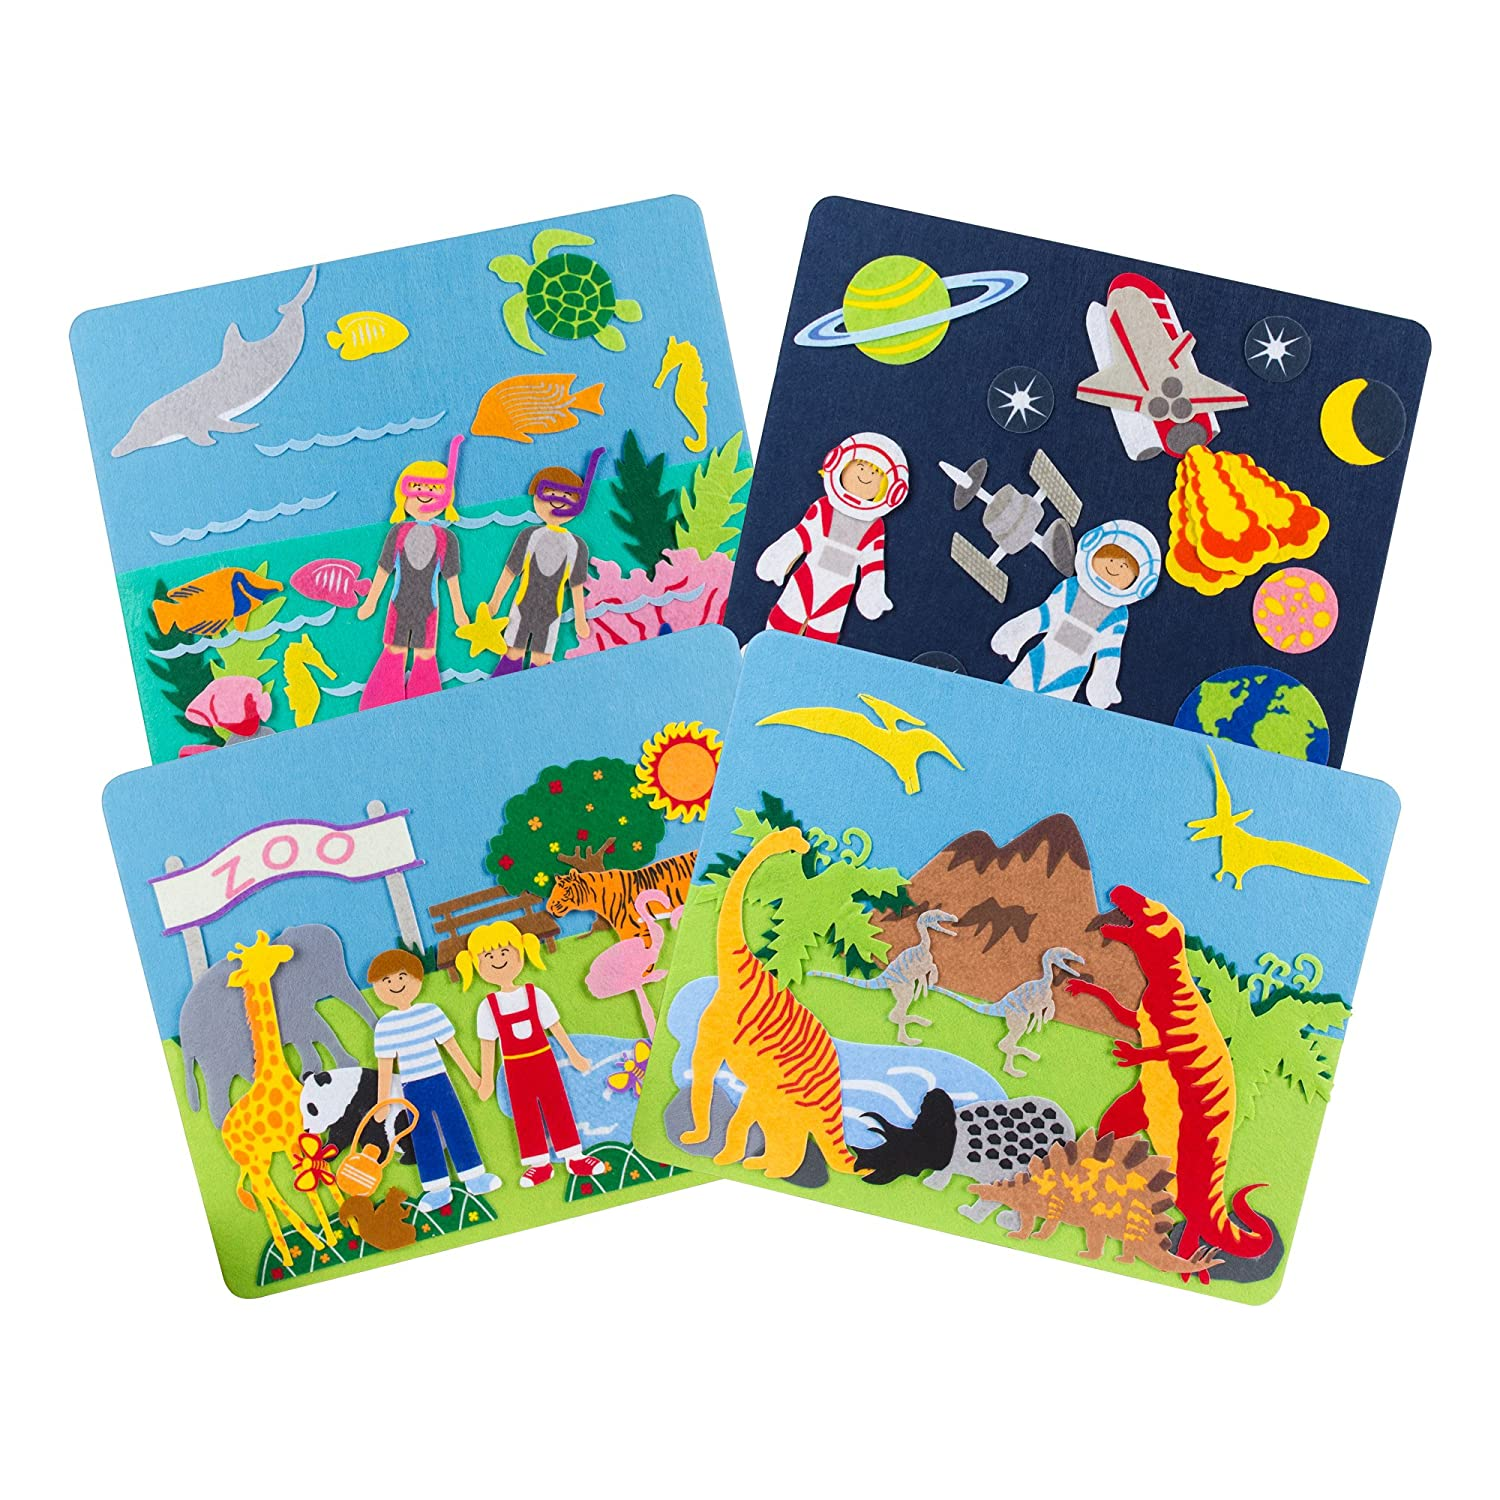 Sprogs SPG-ENA1021-SO Felt Storyboards with Storage Bag, 3 Little Pigs, Gingerbread Man, Goldilocks, Red Riding Hood School Outfitters